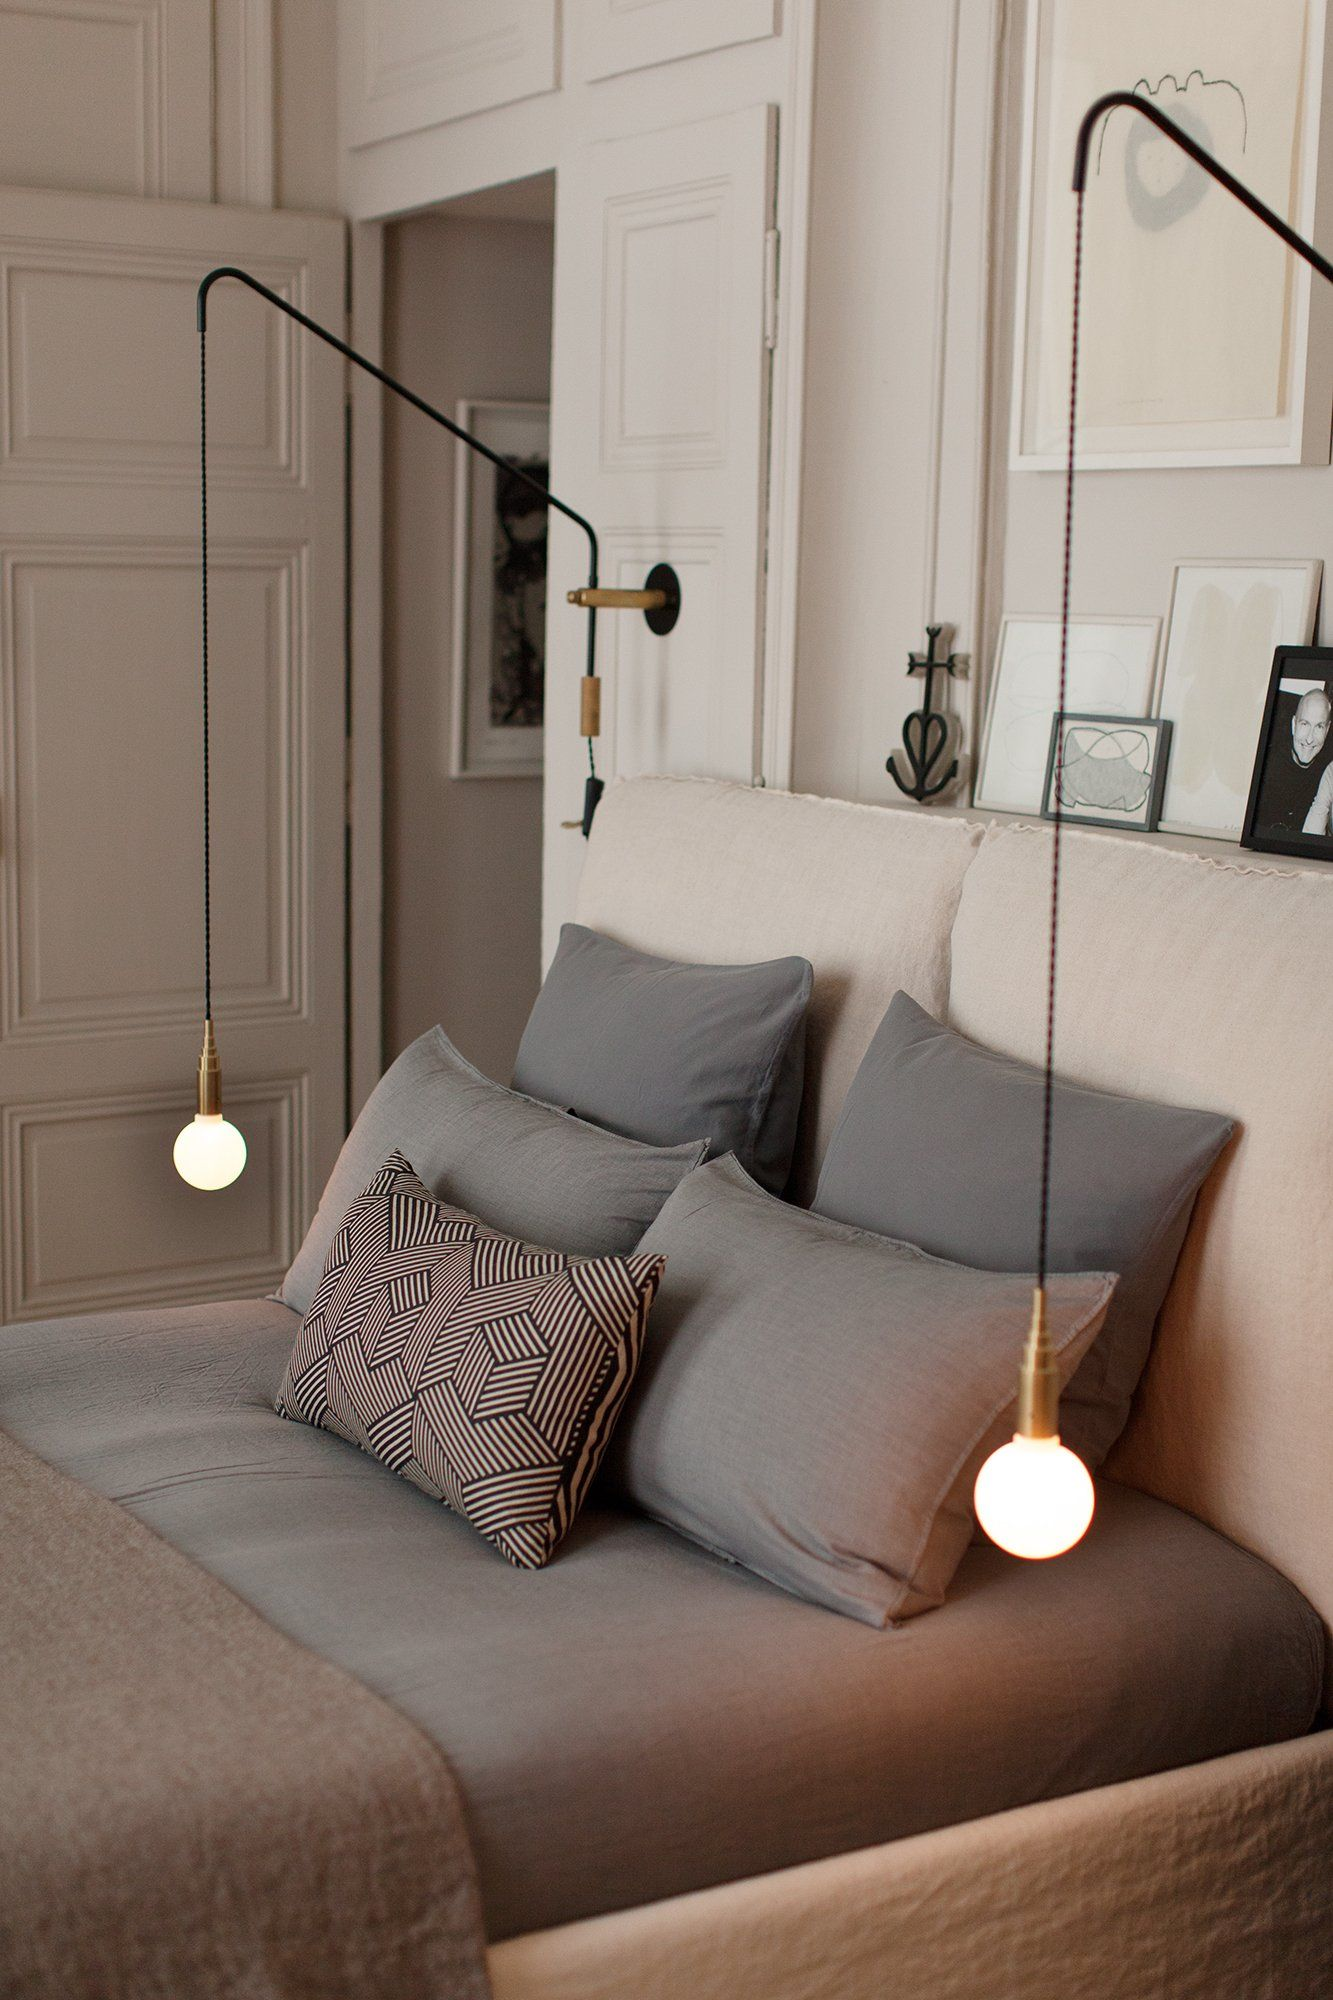 Maison Hand, Between Craft and Modernism | The socialite ...